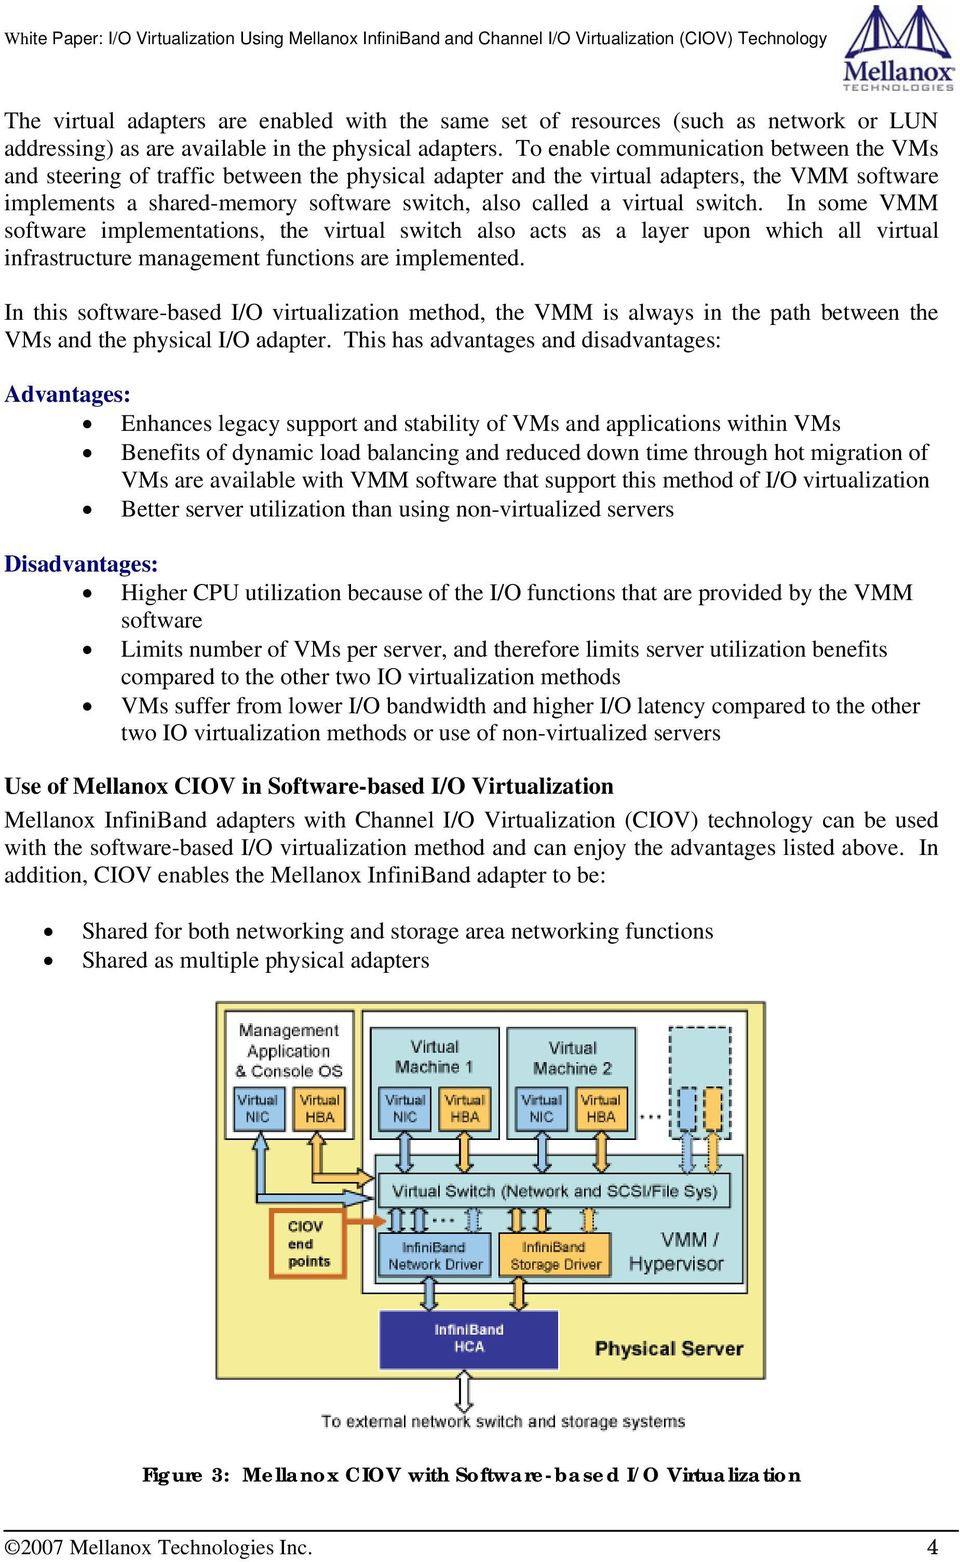 virtual switch. In some VMM software implementations, the virtual switch also acts as a layer upon which all virtual infrastructure management functions are implemented.